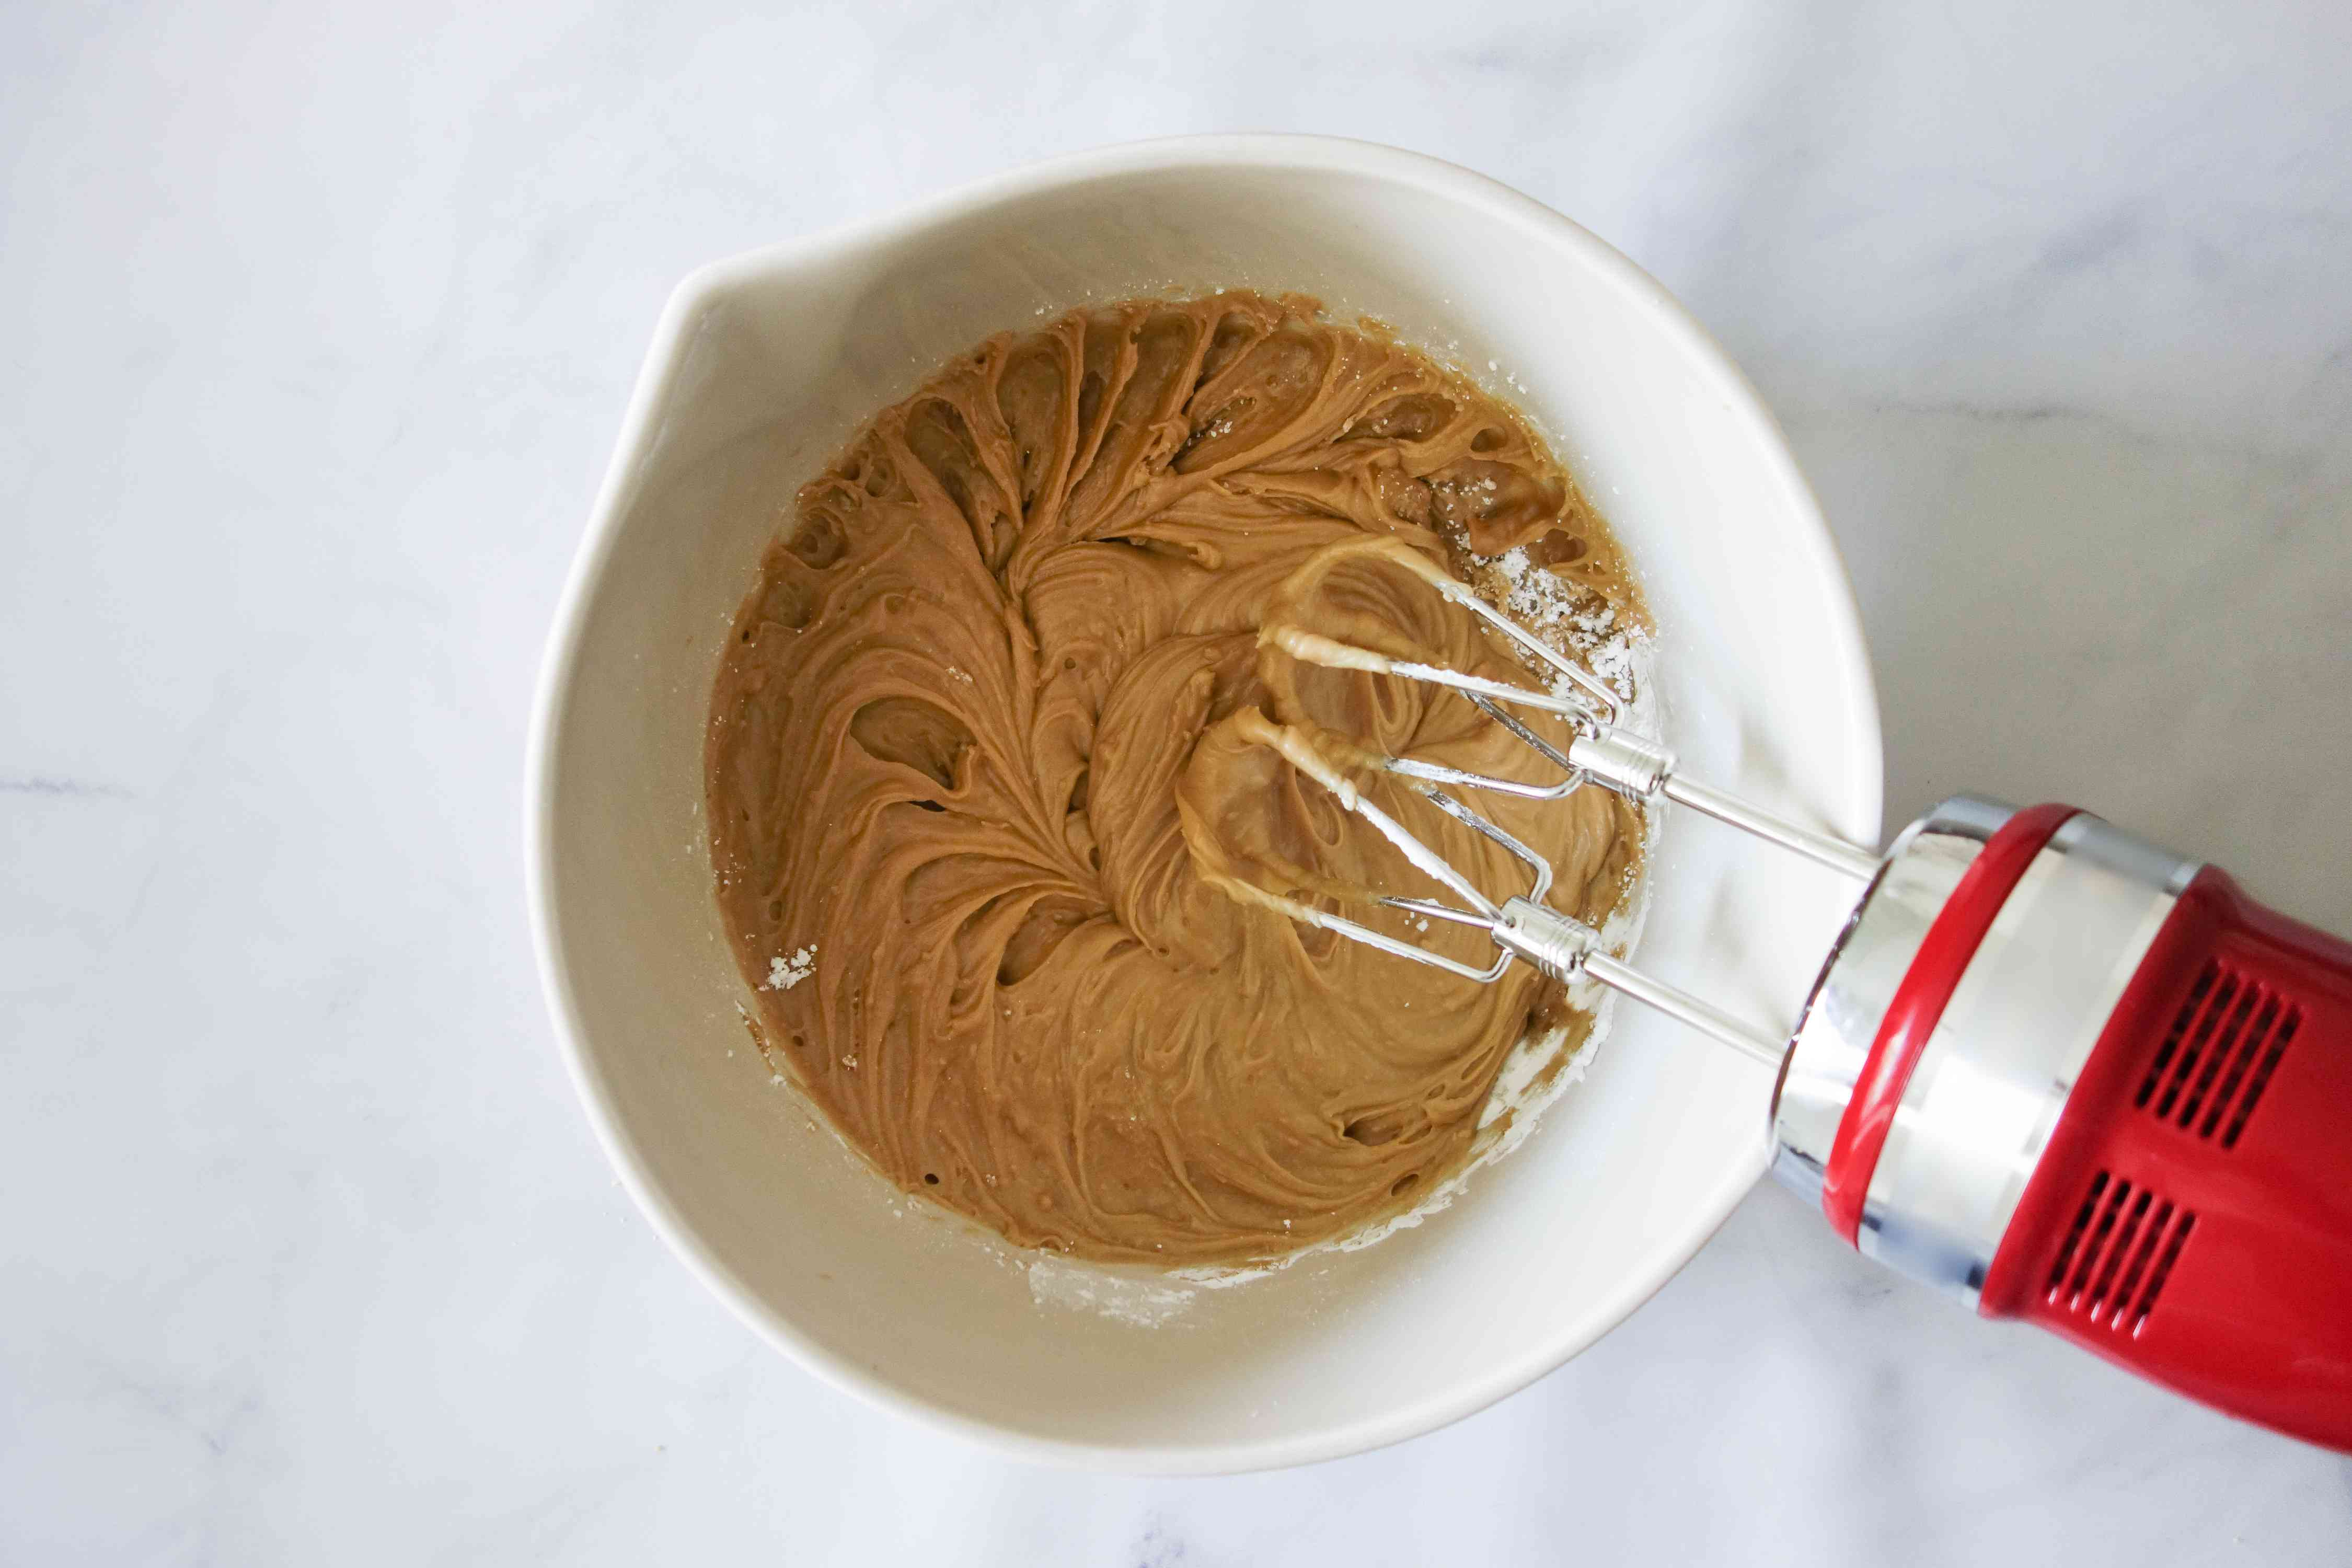 beat the maple frosting ingredients together